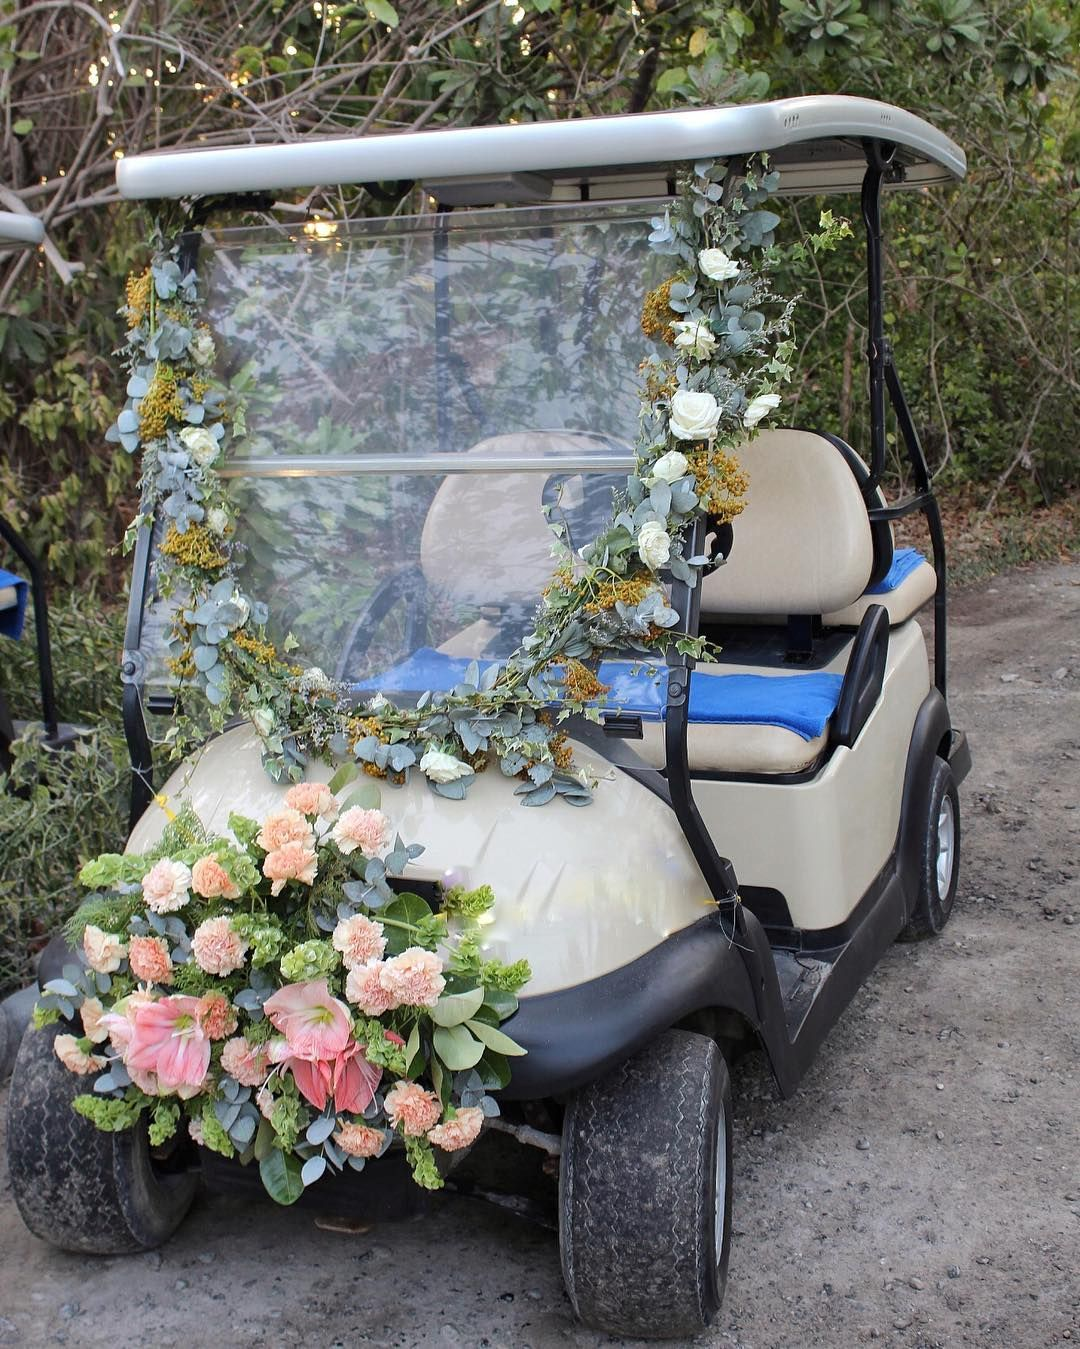 Golf Buggy For The Bride @gideonhermosa #Gideonized